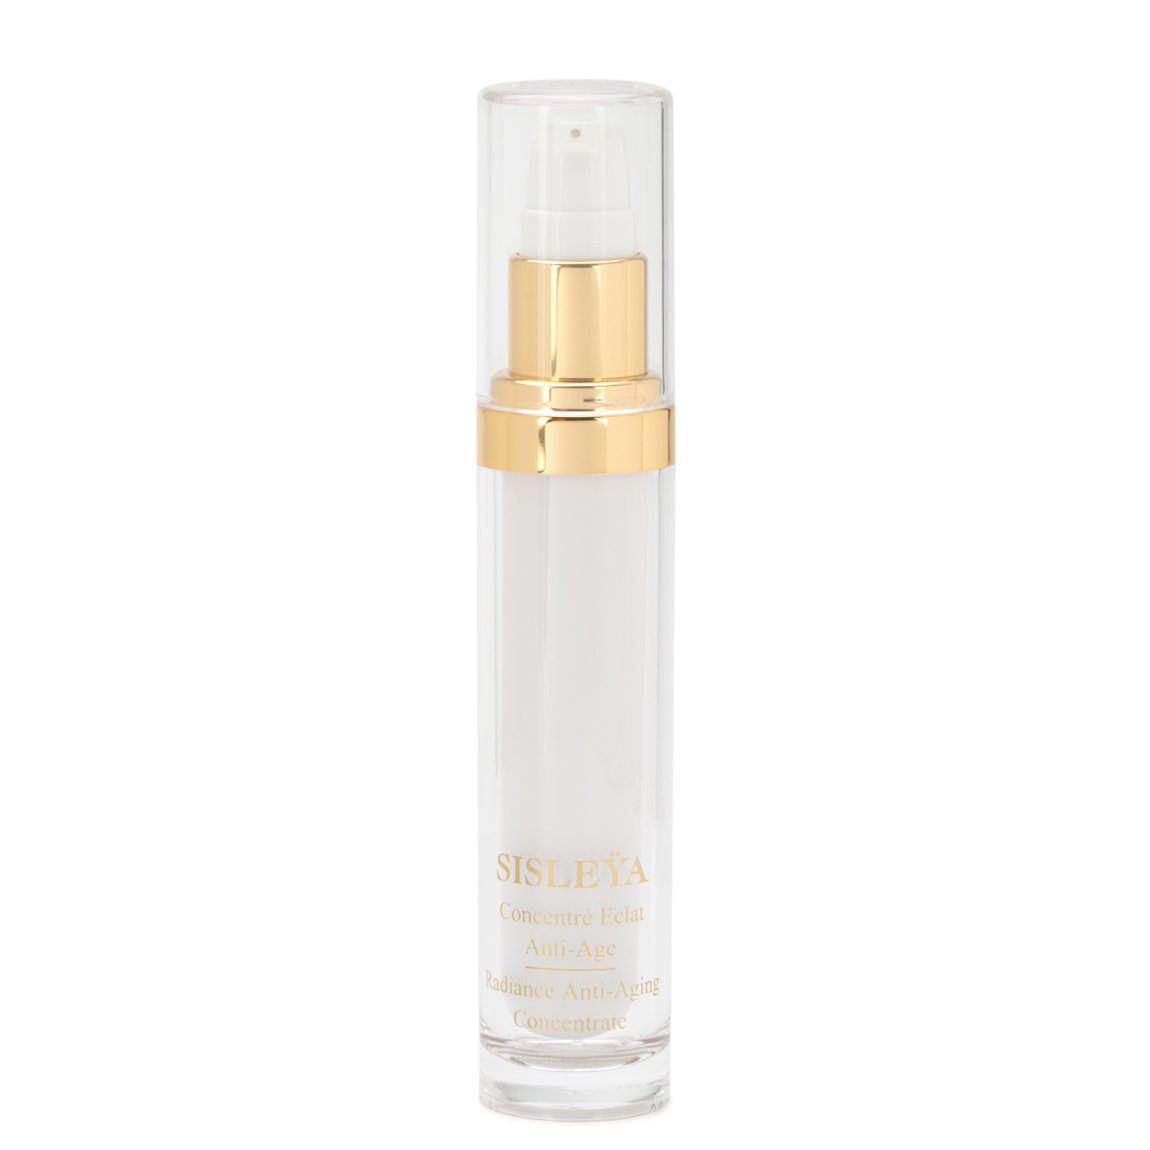 Sisley-Paris Sisleÿa Radiance Anti-Aging Concentrate alternative view 1 - product swatch.